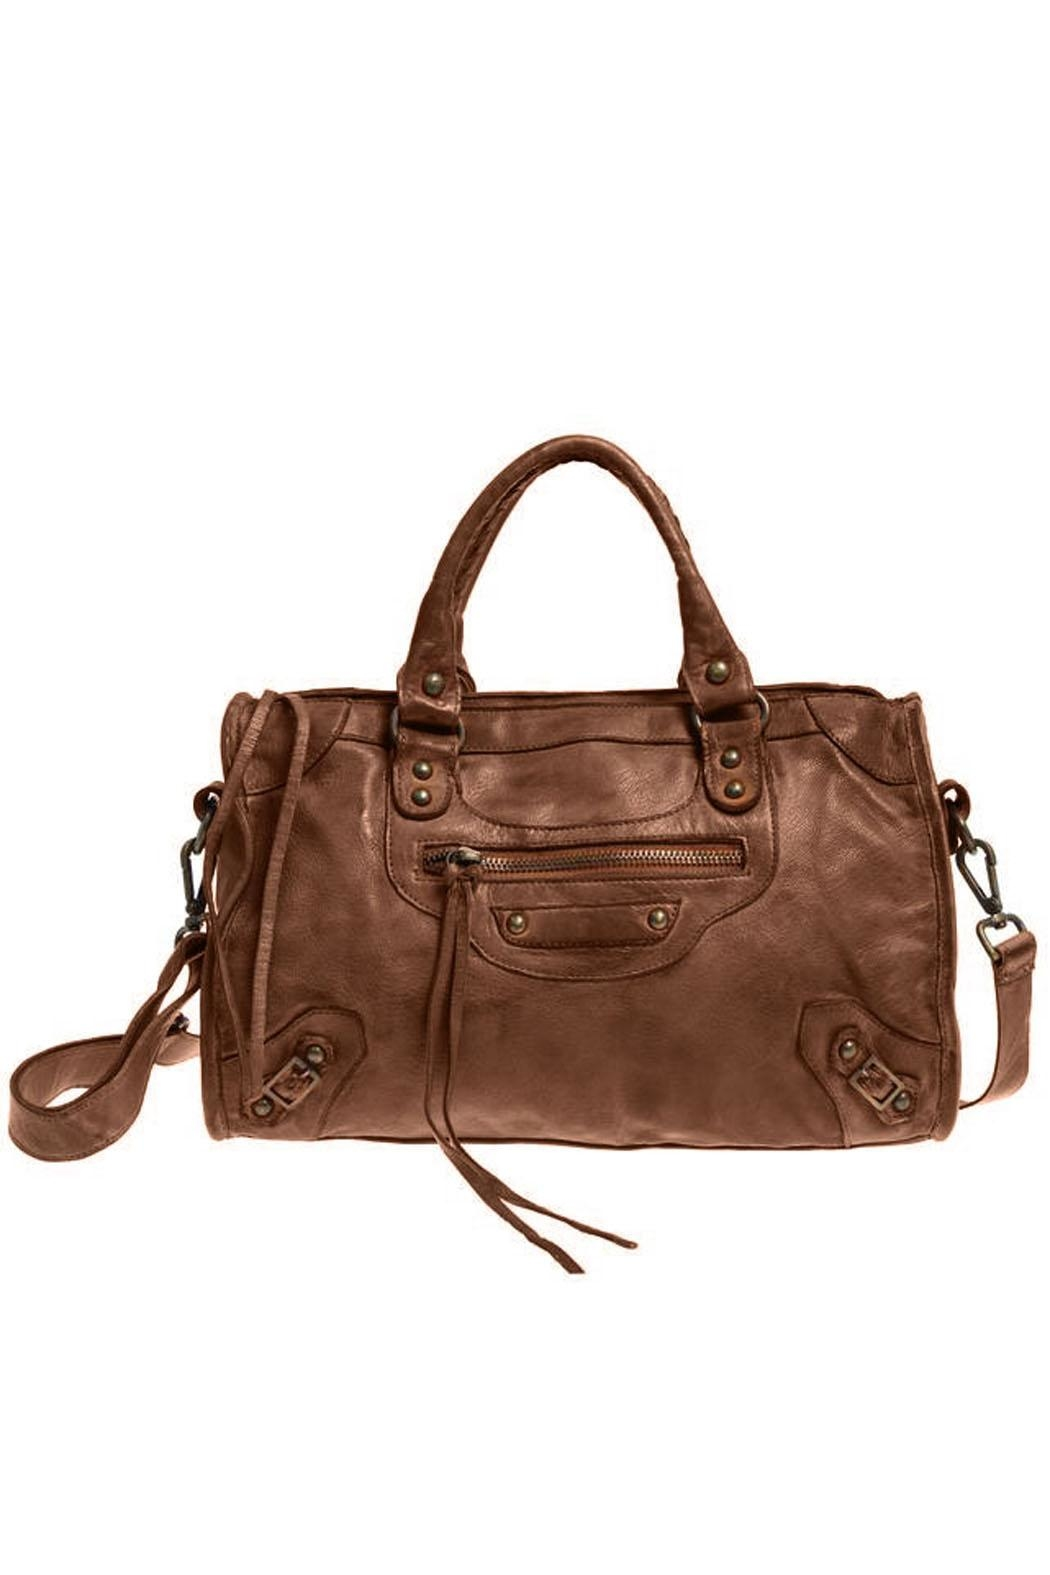 e7bde79bdf92d Tano Equestrian Satchel from California by Purseonality — Shoptiques